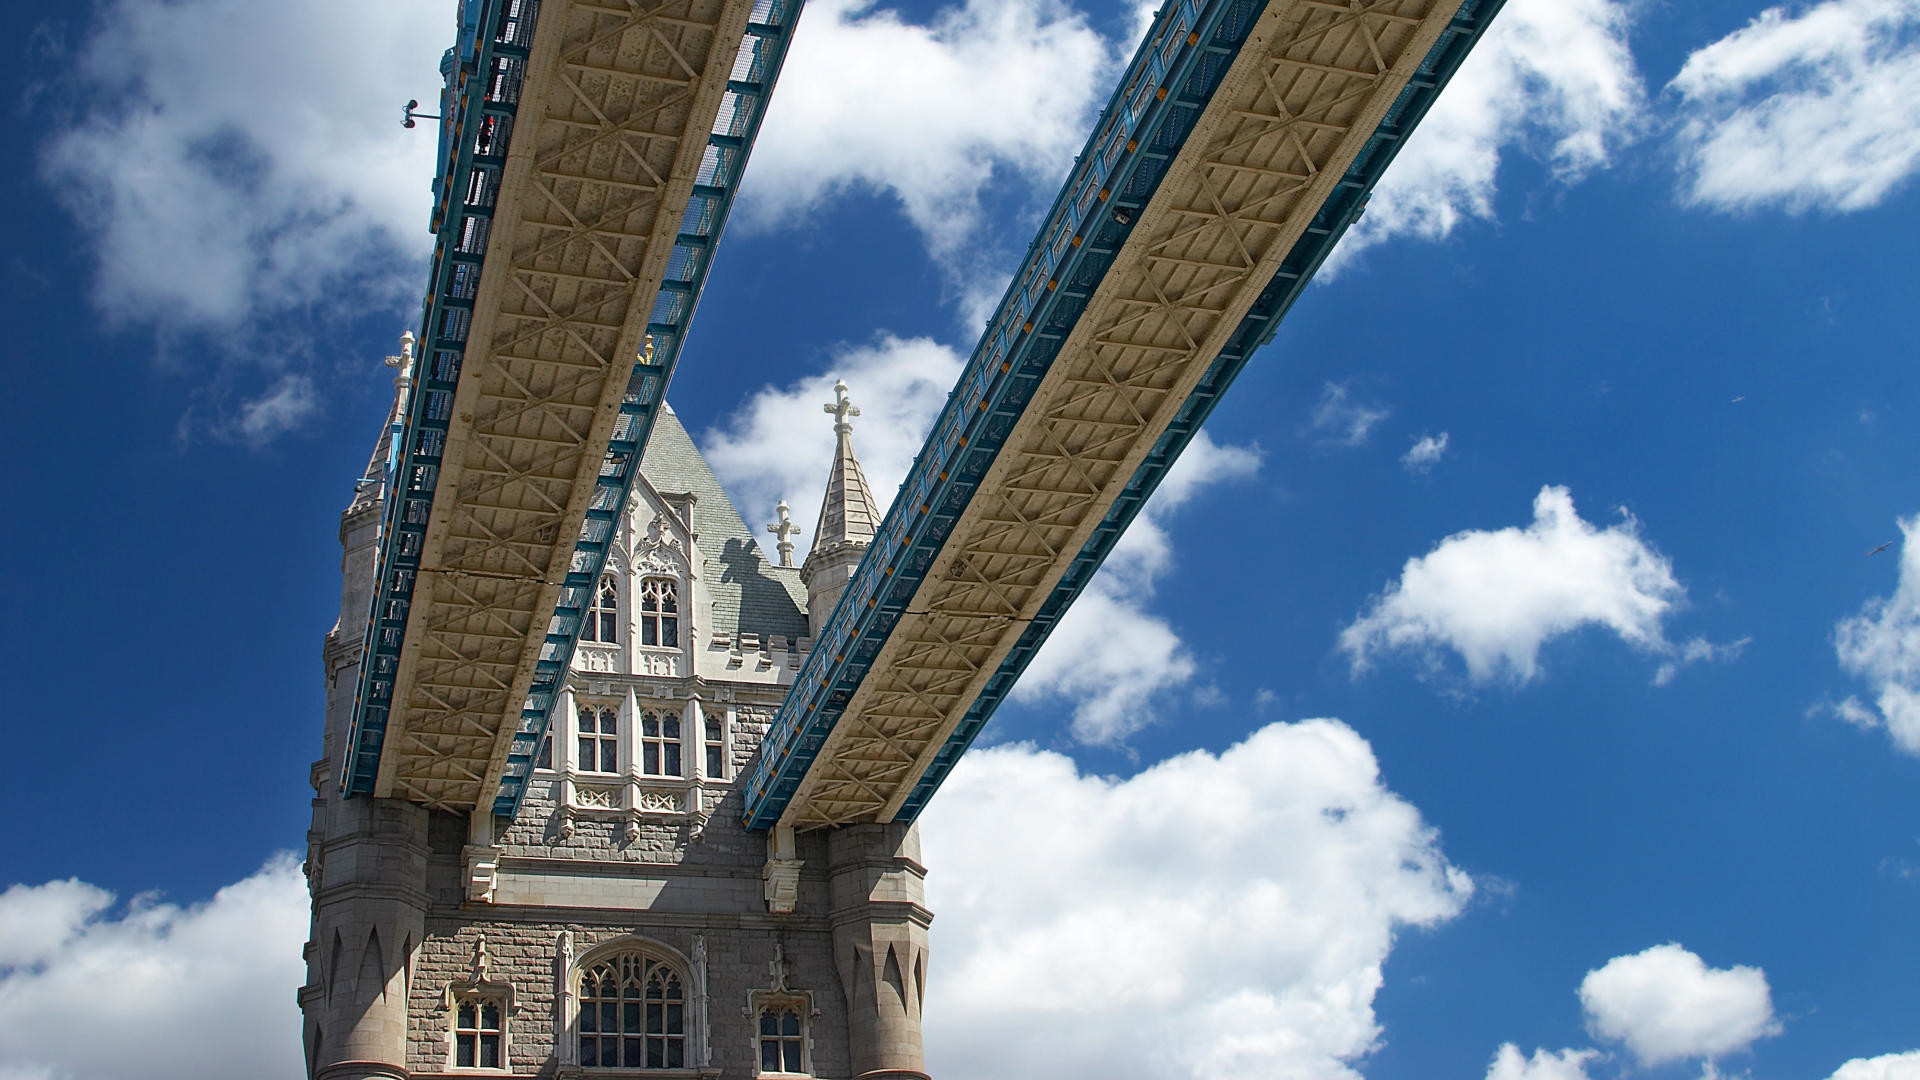 Res: 1920x1080, Download Background - Tower Bridge, London, England - Free Cool Backgrounds  and Wallpapers for your Desktop Or Laptop.